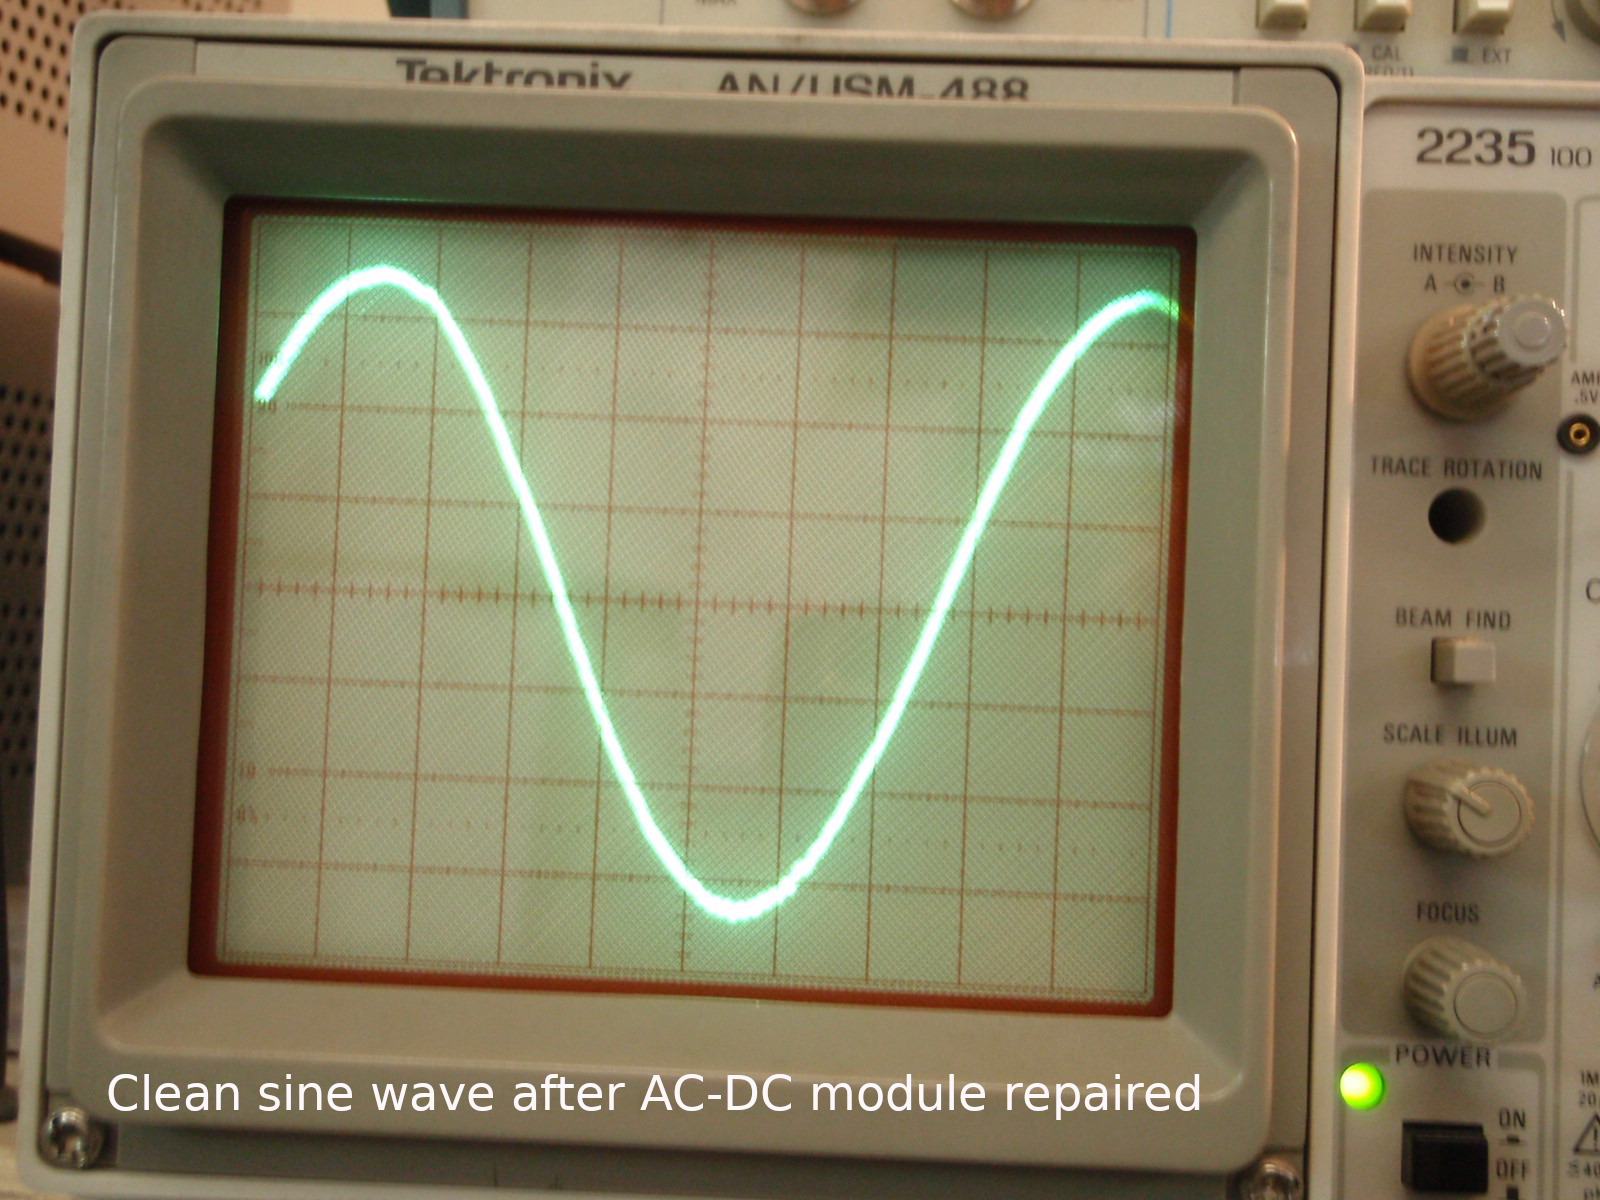 Clean sine wave after AC-DC module repaired.